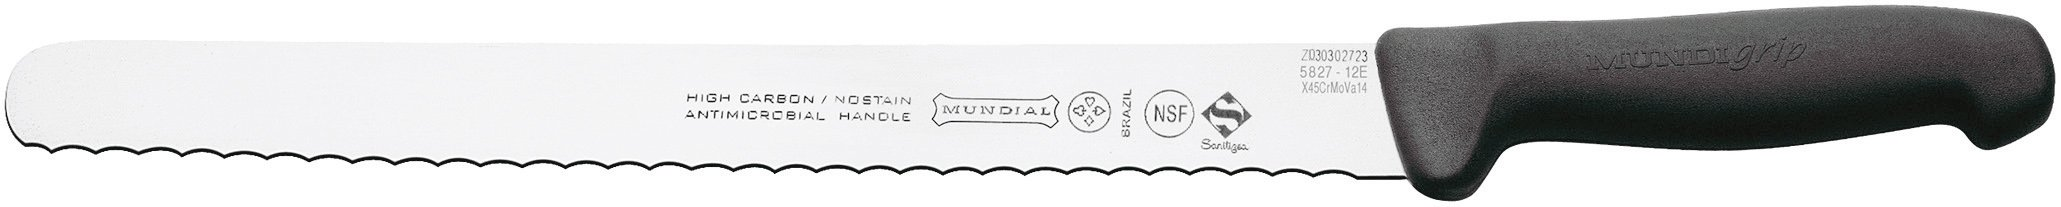 Mundial 5827-12E 12-Inch Serrated Edge Slicing Knife, Black